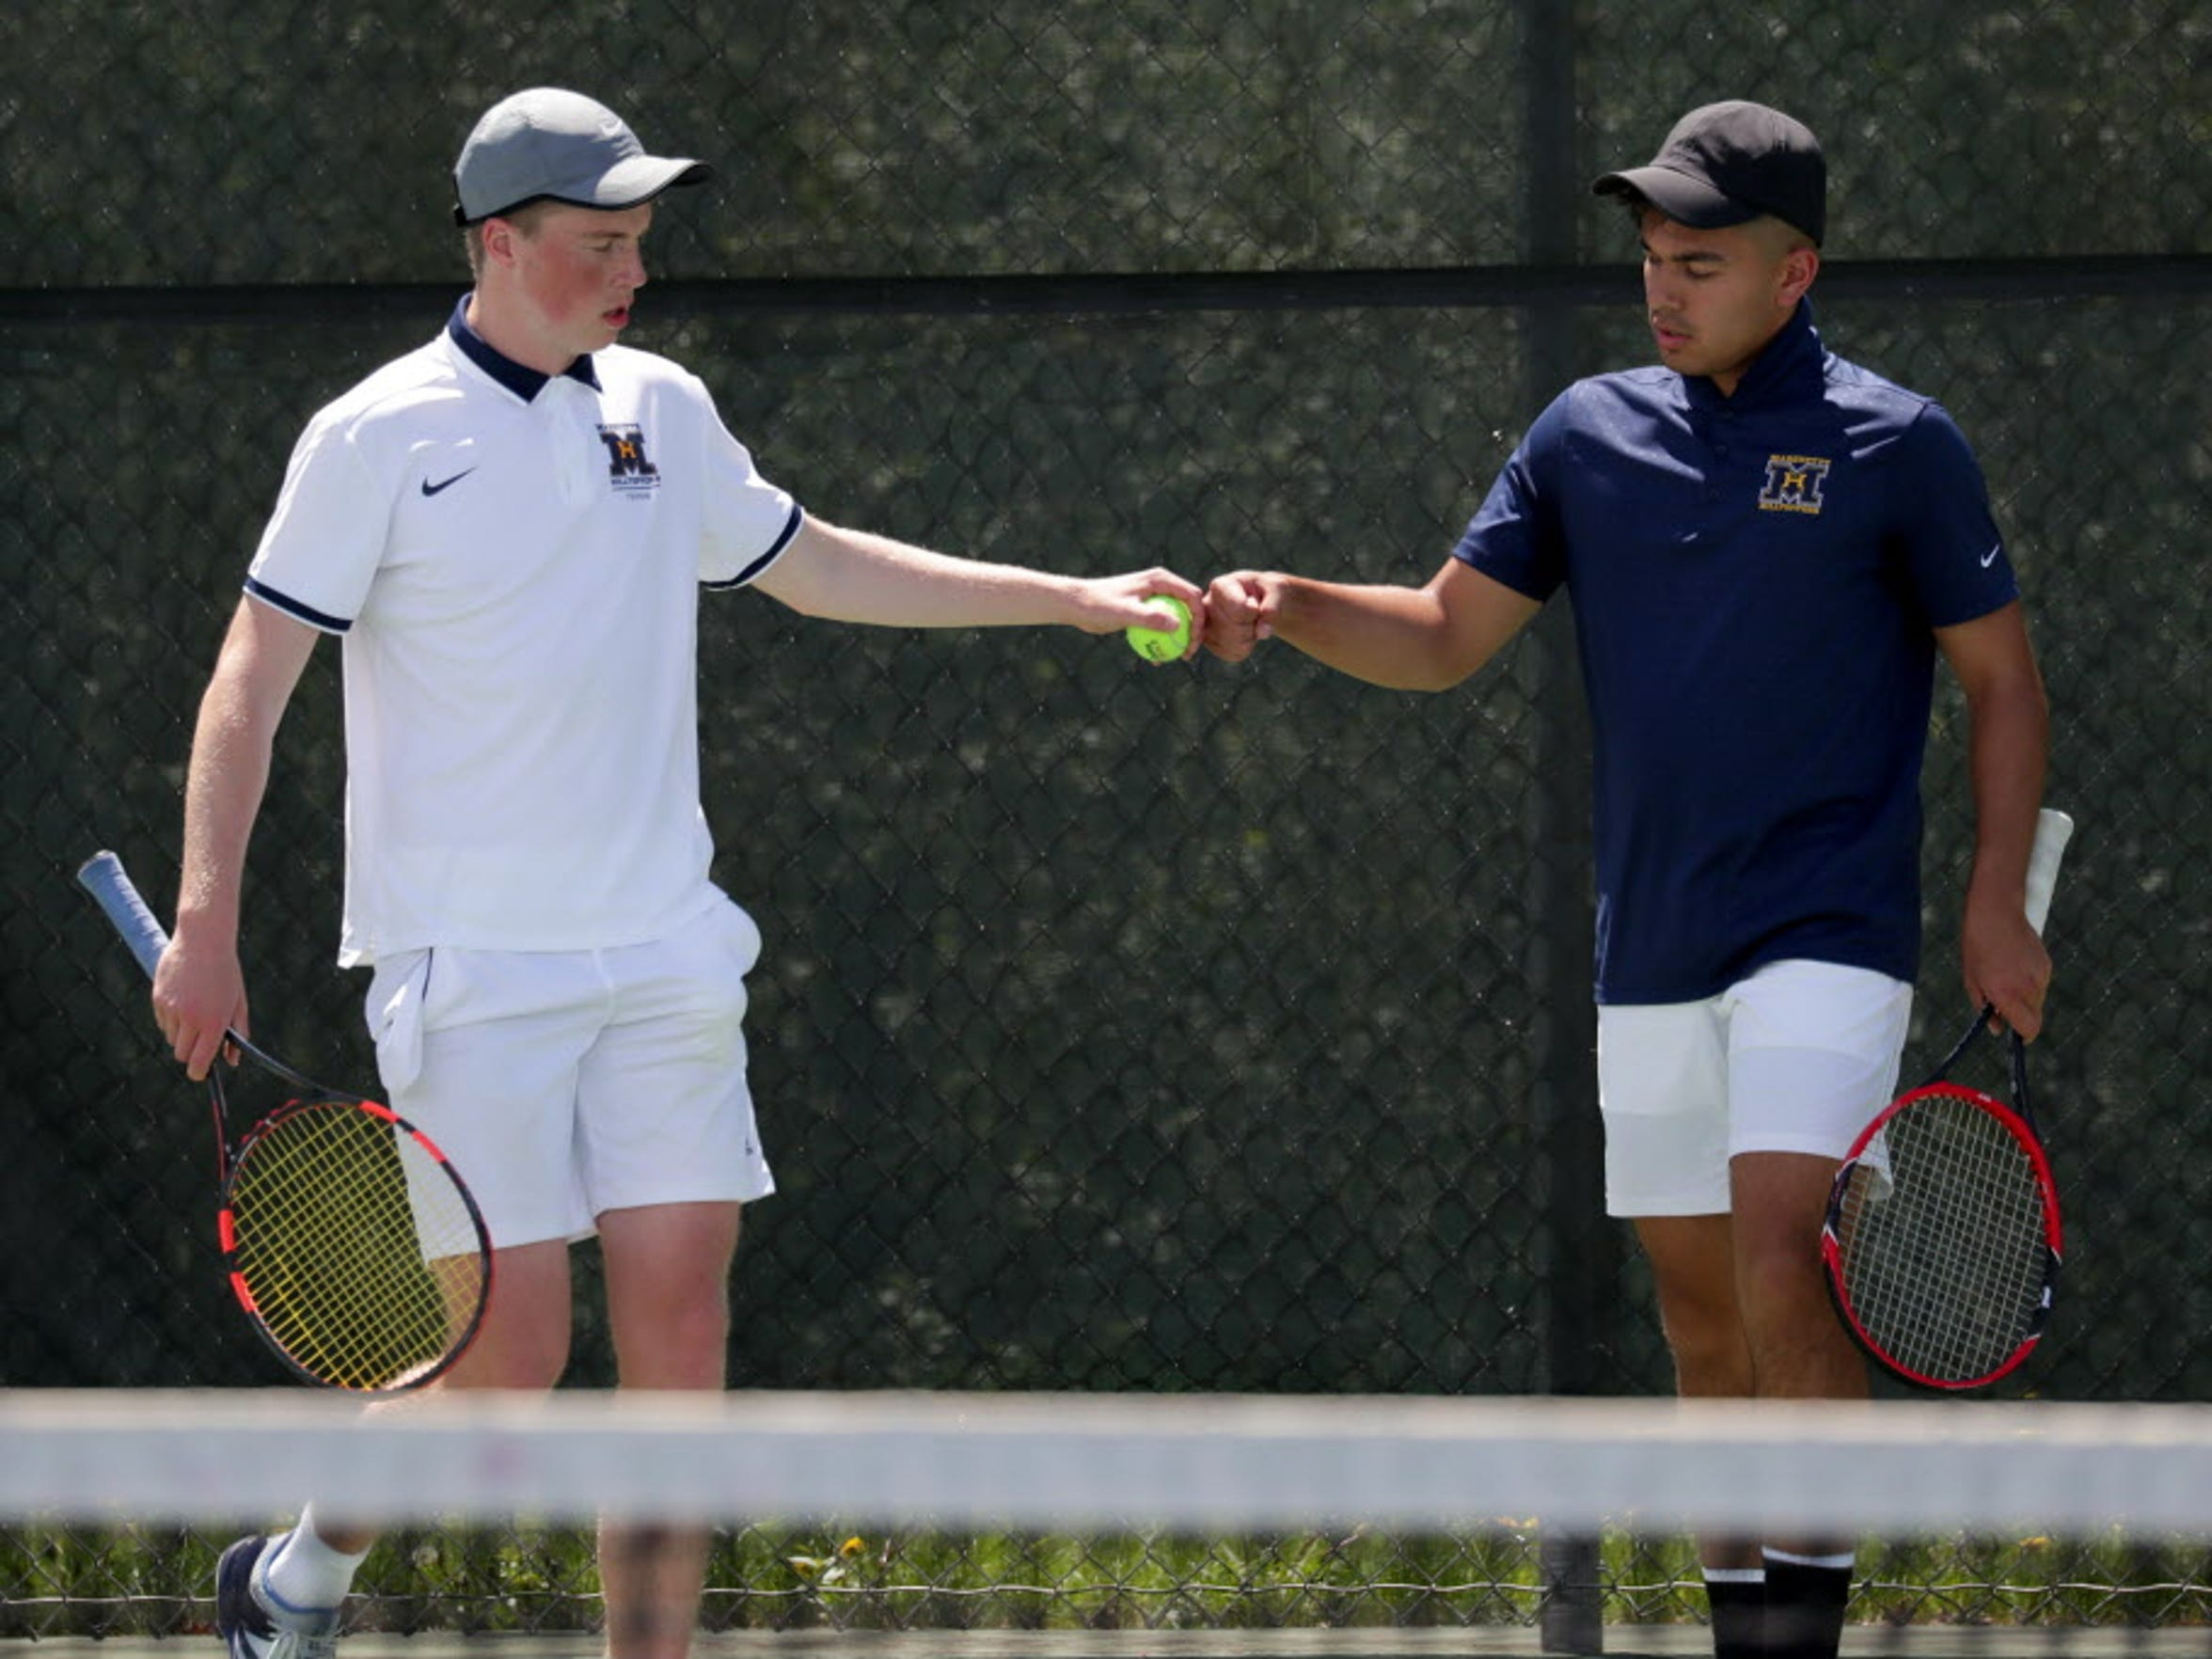 Marquette's doubles team of Noah Guillermo (right)